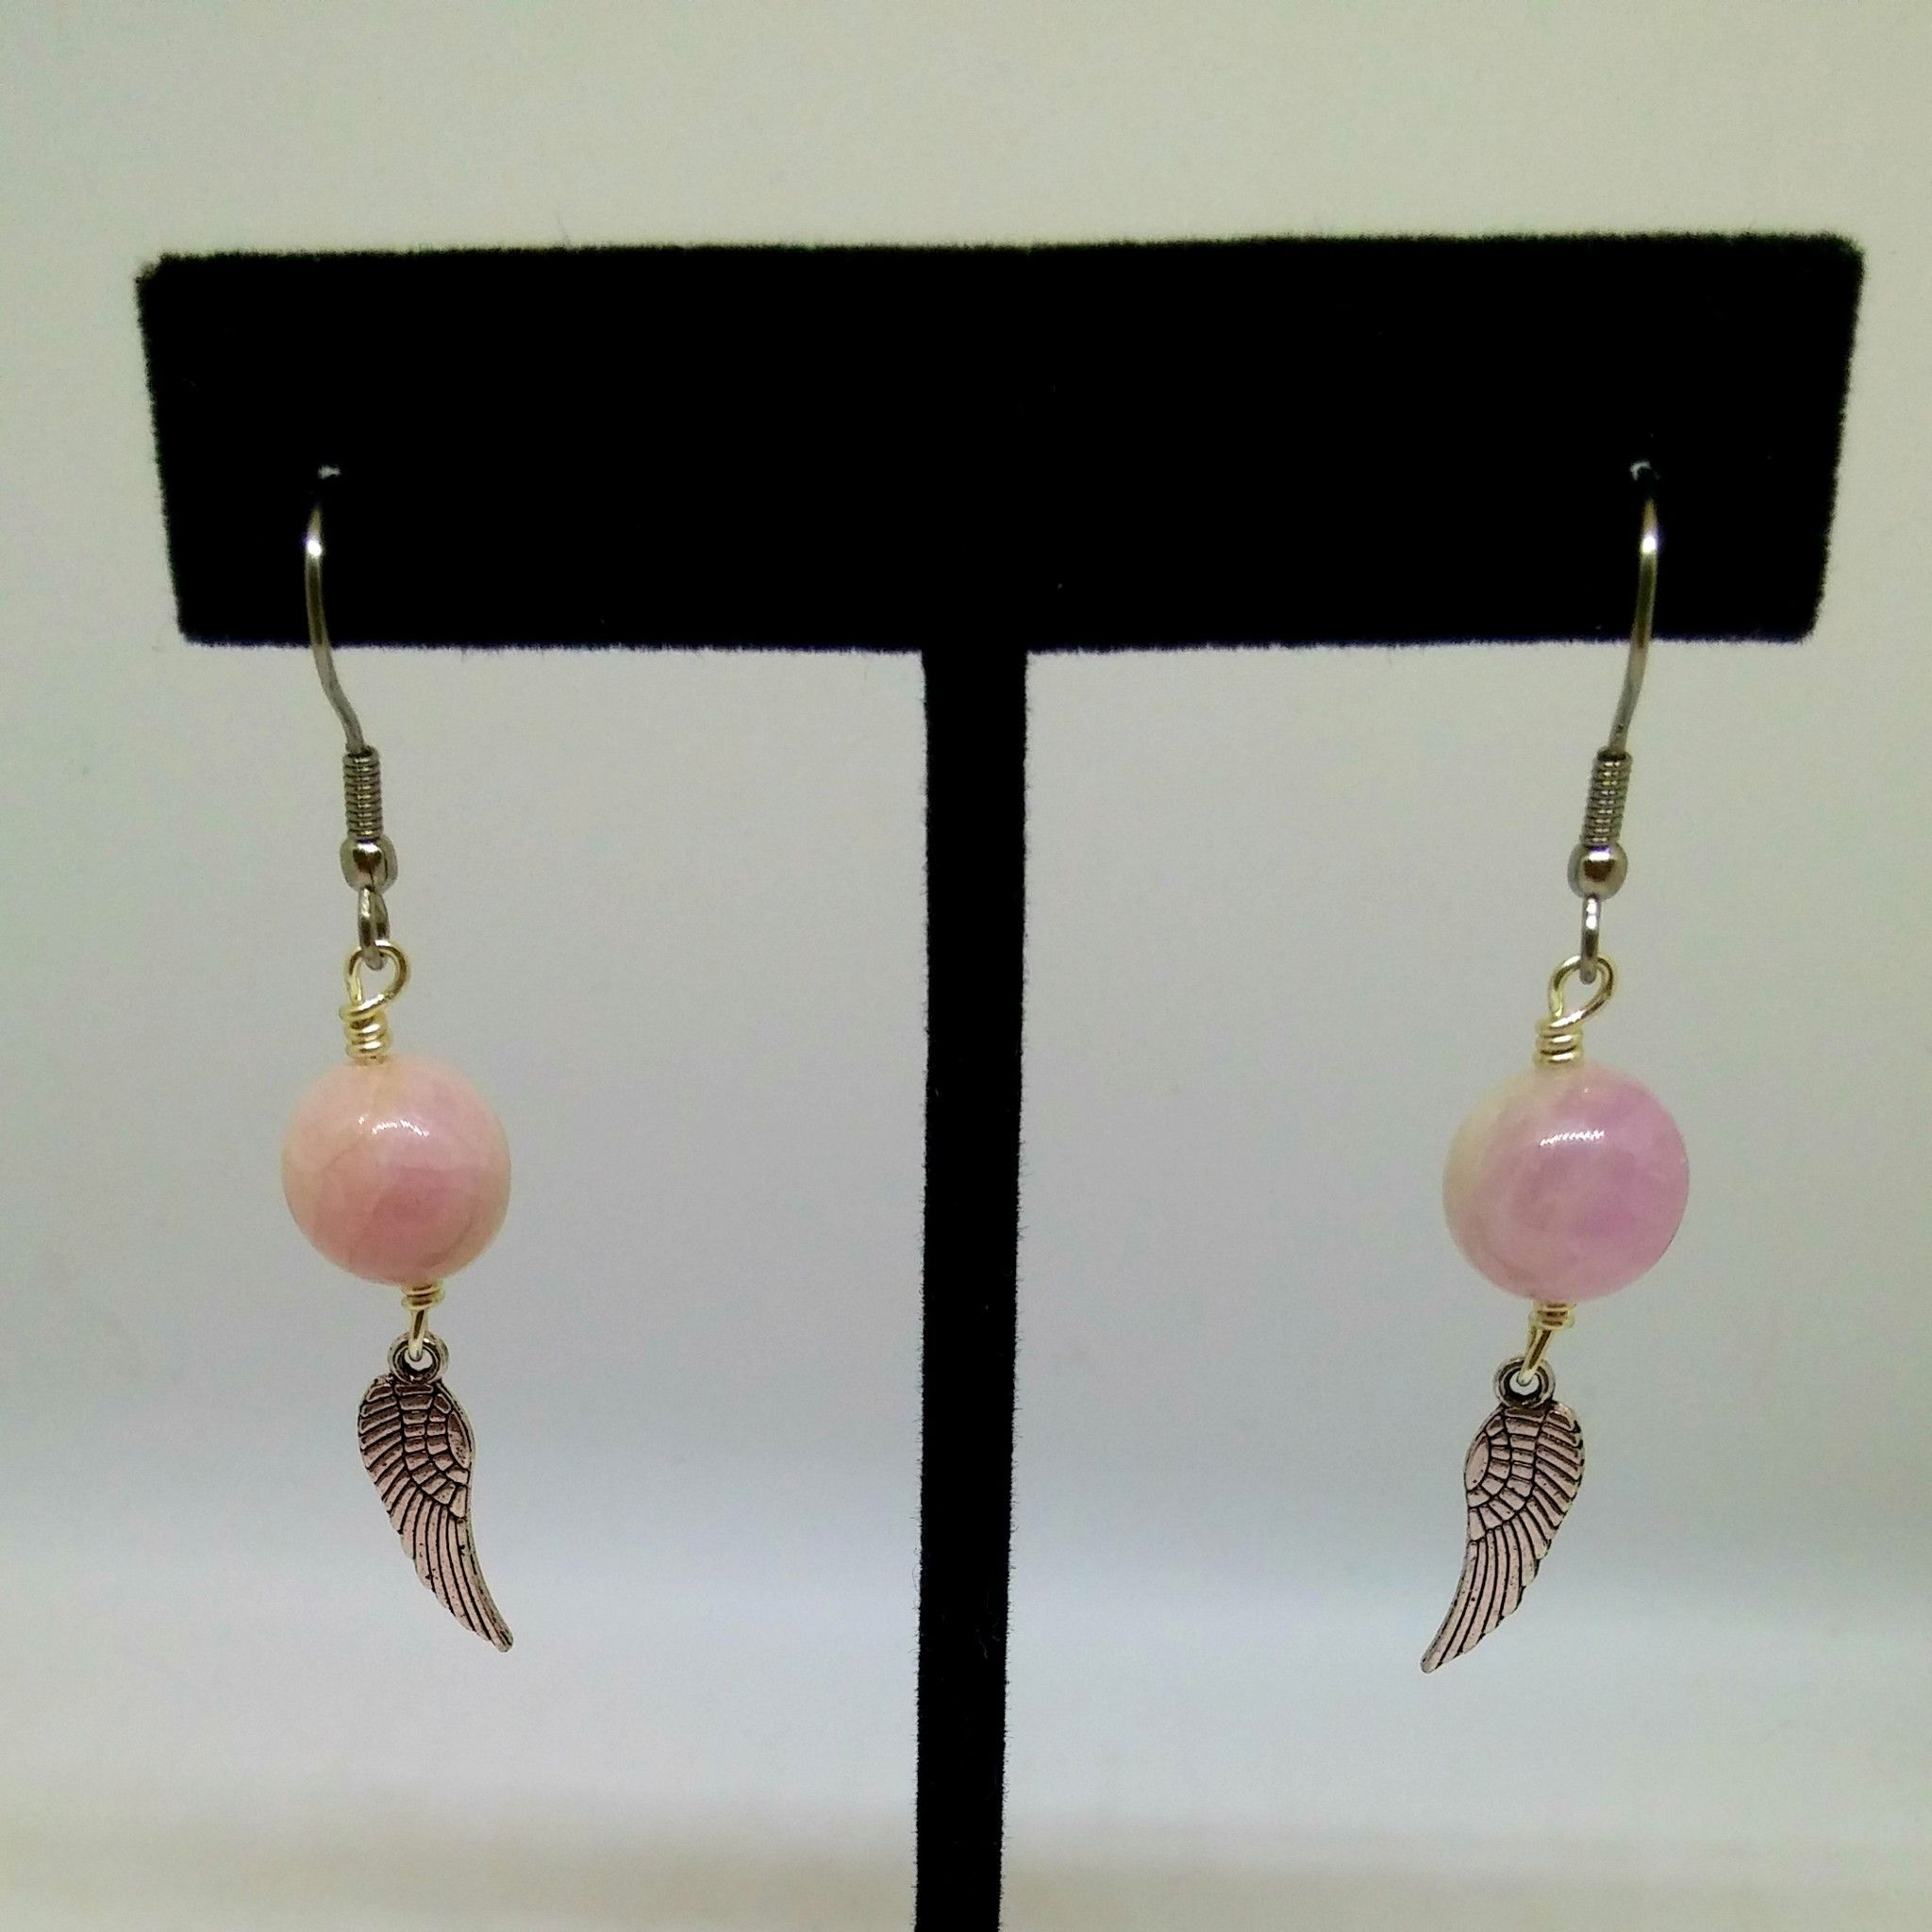 jewels pair csk winter a earrings kunzite white of s and diamond christie gold